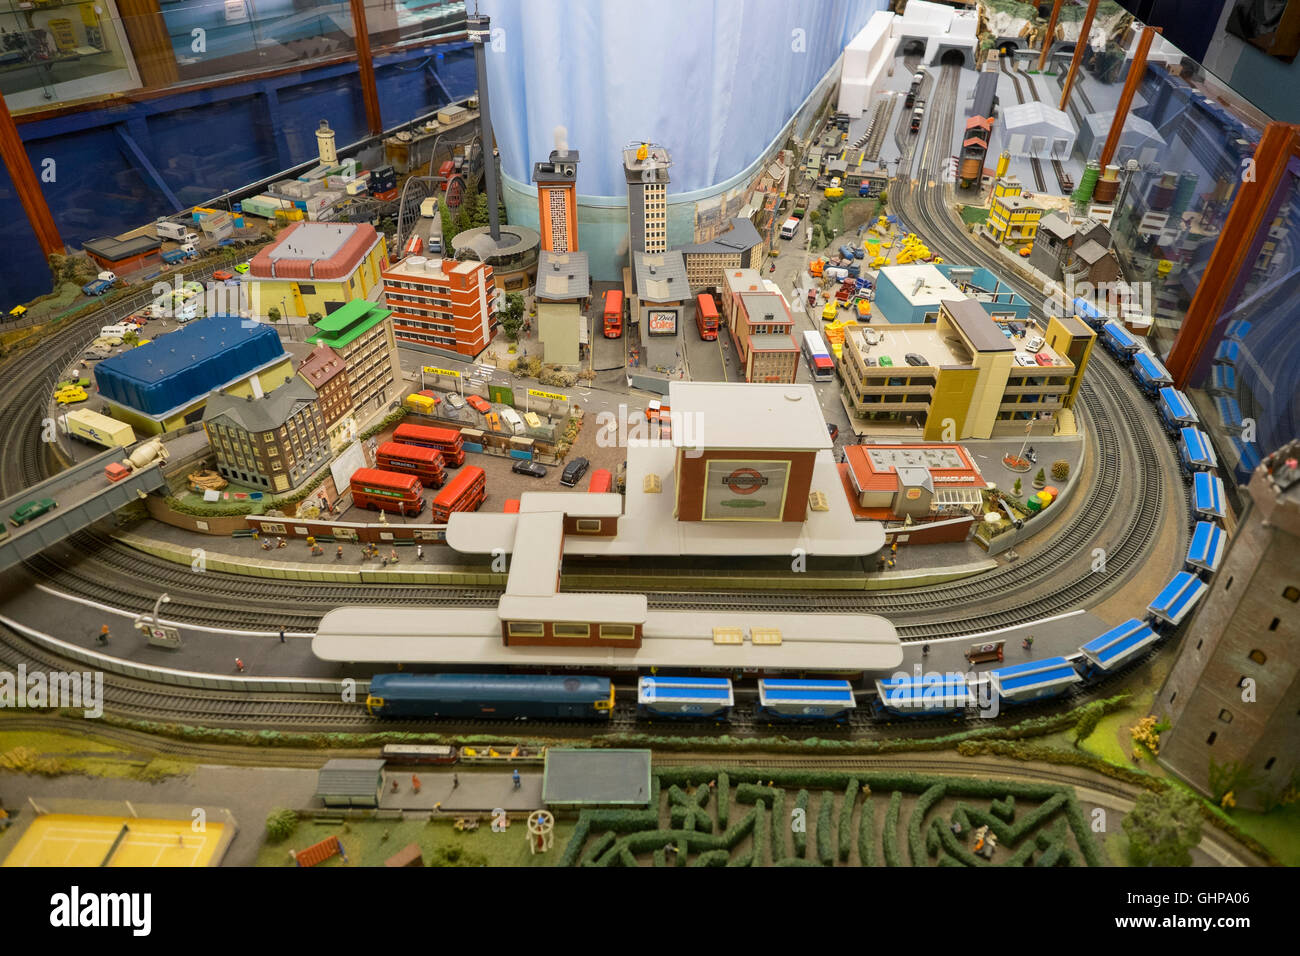 World of Model Railways train layout, Mevagissey, Cornwall